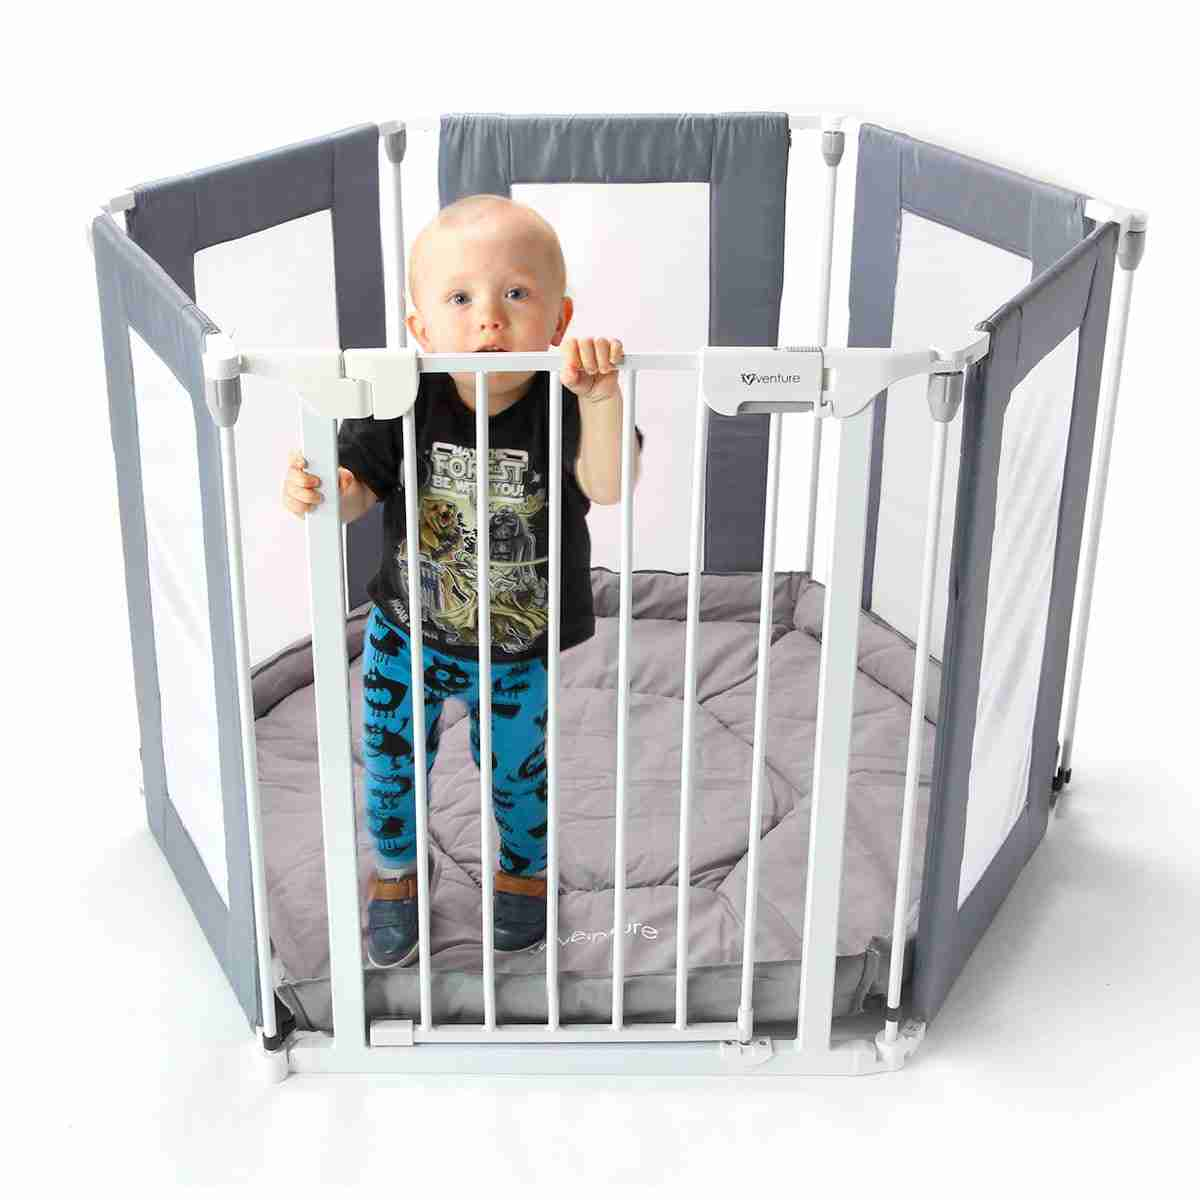 Child in the All Stars HEX Playpen